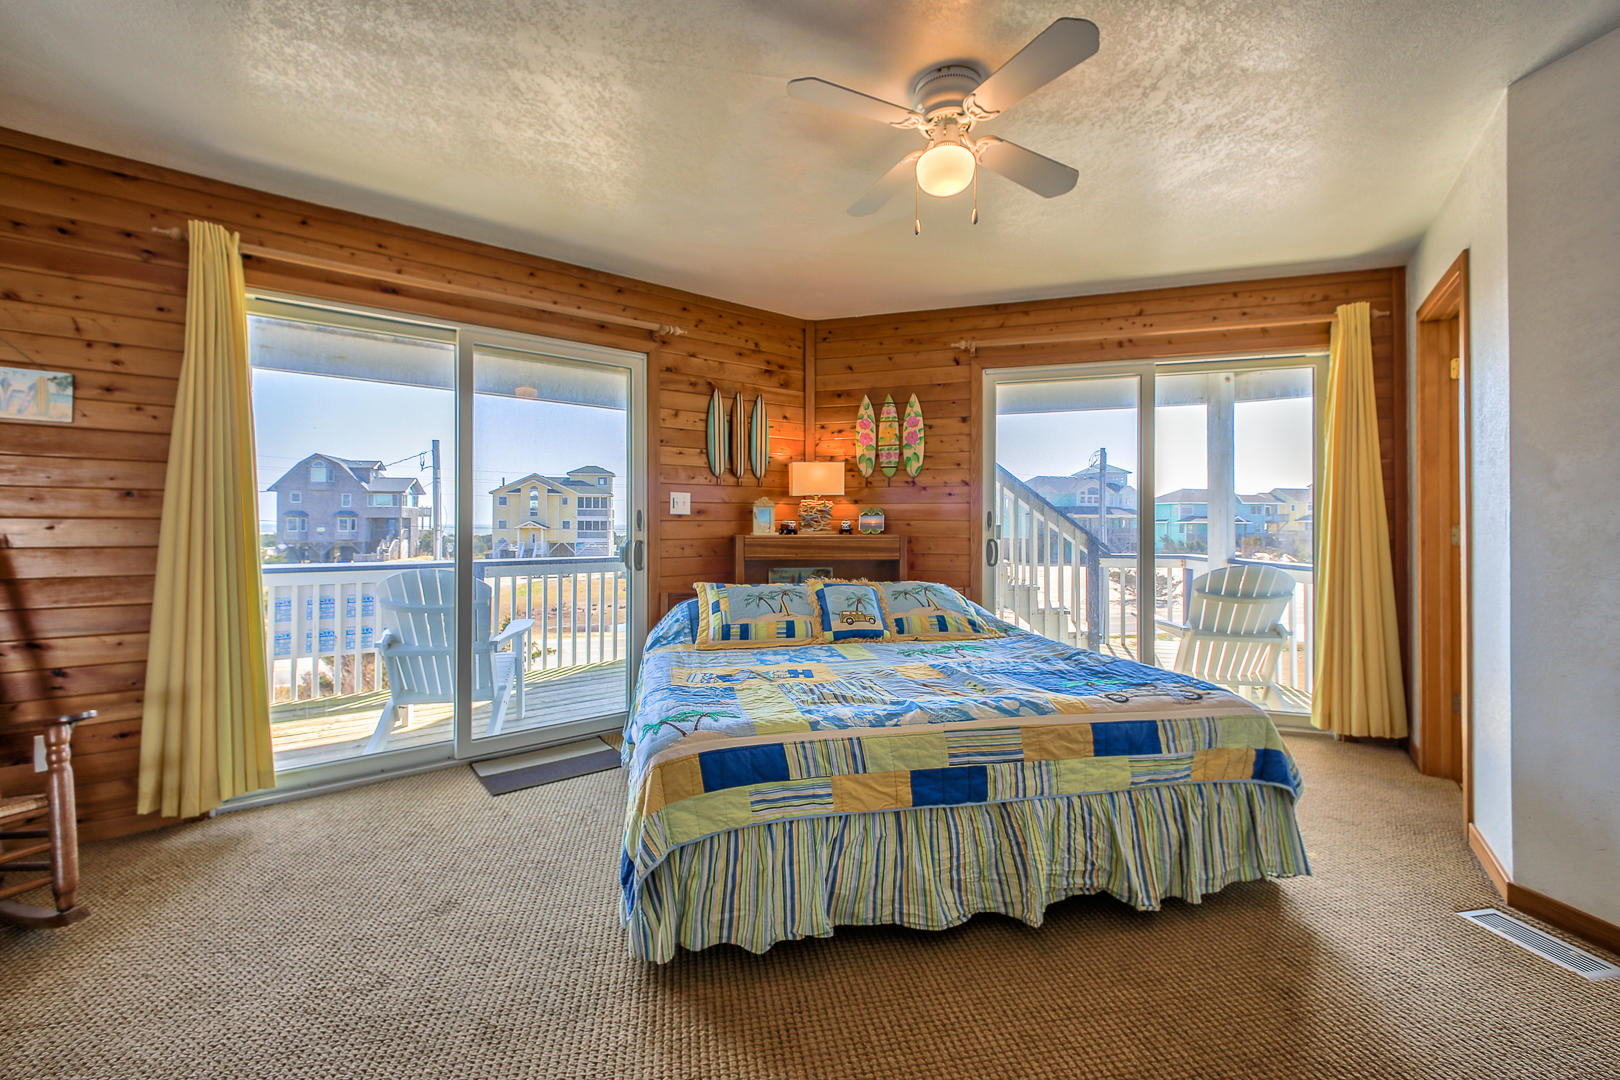 Middle level Master Bedroom #1 with King bed and private bath